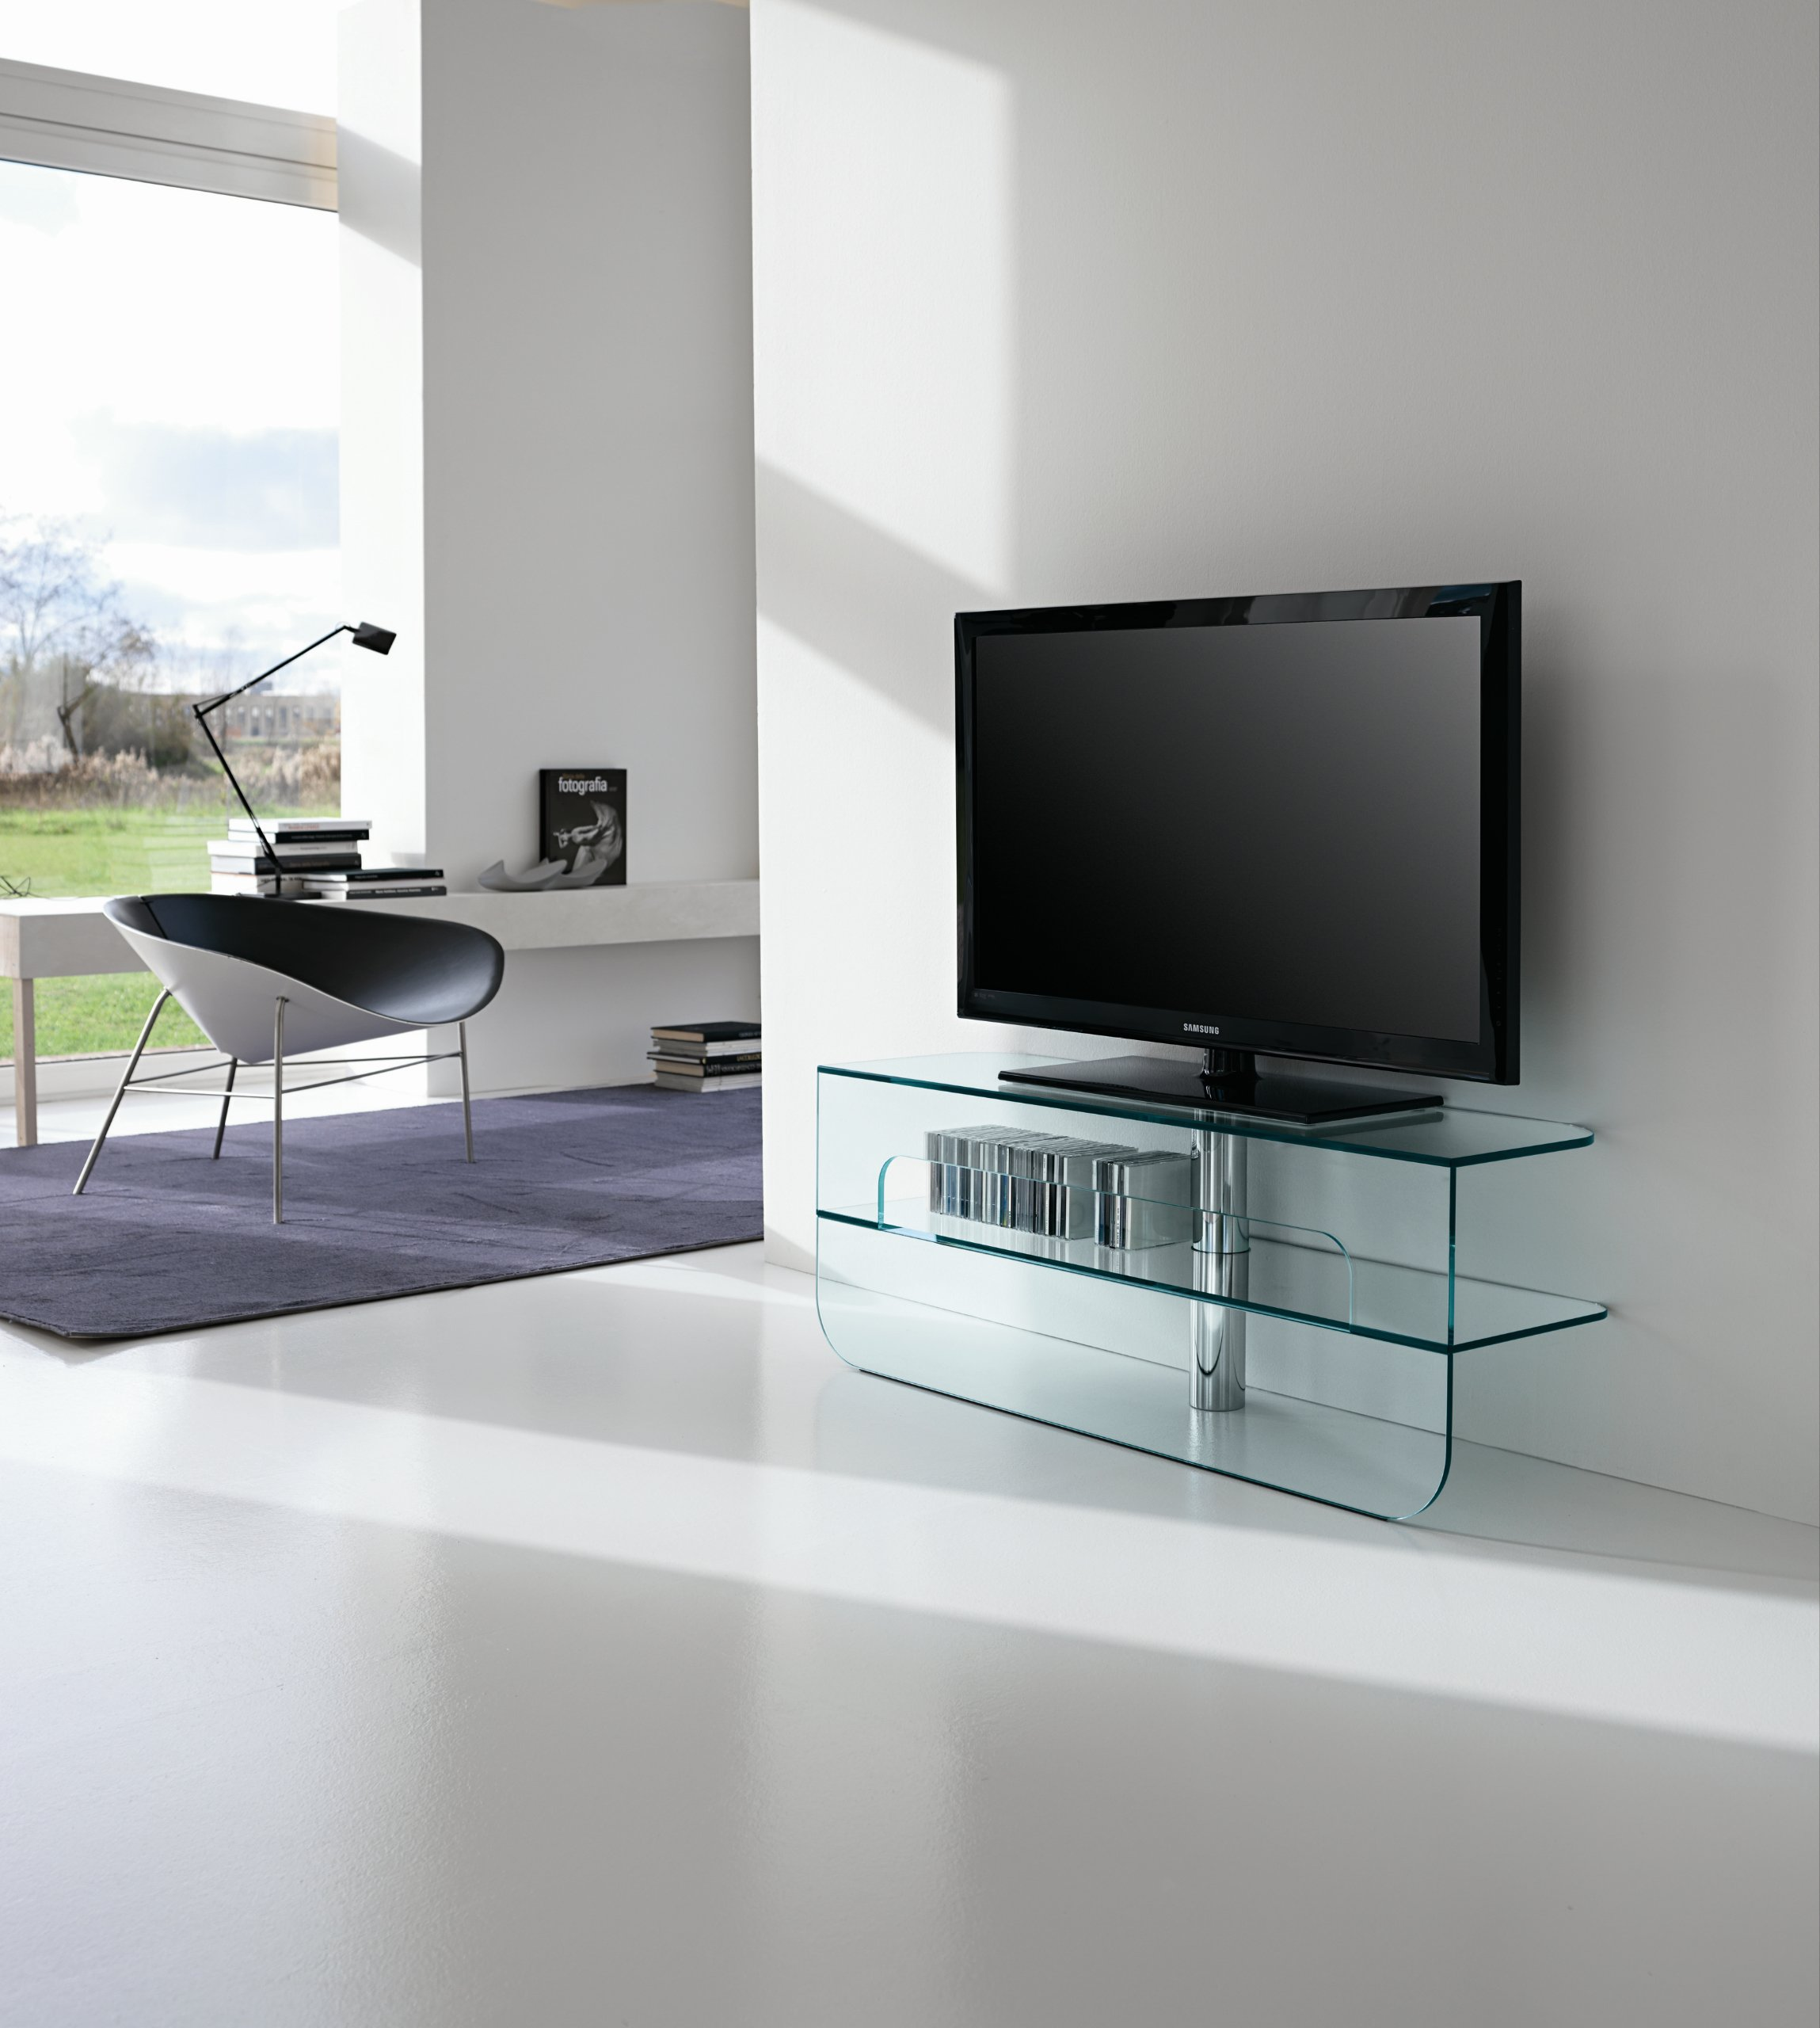 Meuble Tv En Verre Design Meuble Tele Coin Maisonjoffrois # Table Tv En Verre Design